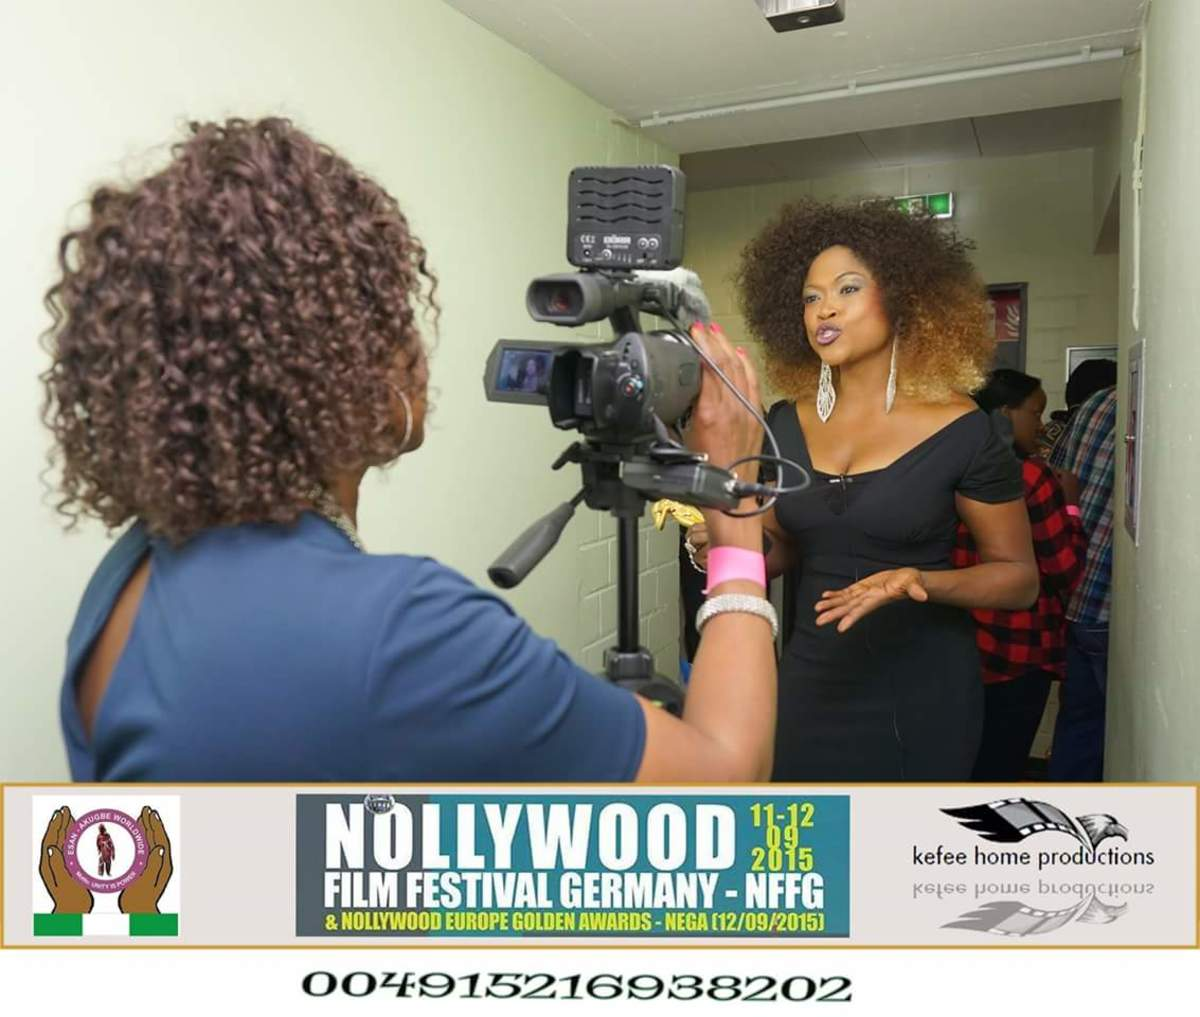 One of Queen Blessing's goals is to establish her own TV show here in the United States and have it broadcast to her native Nigeria, and Internationally.